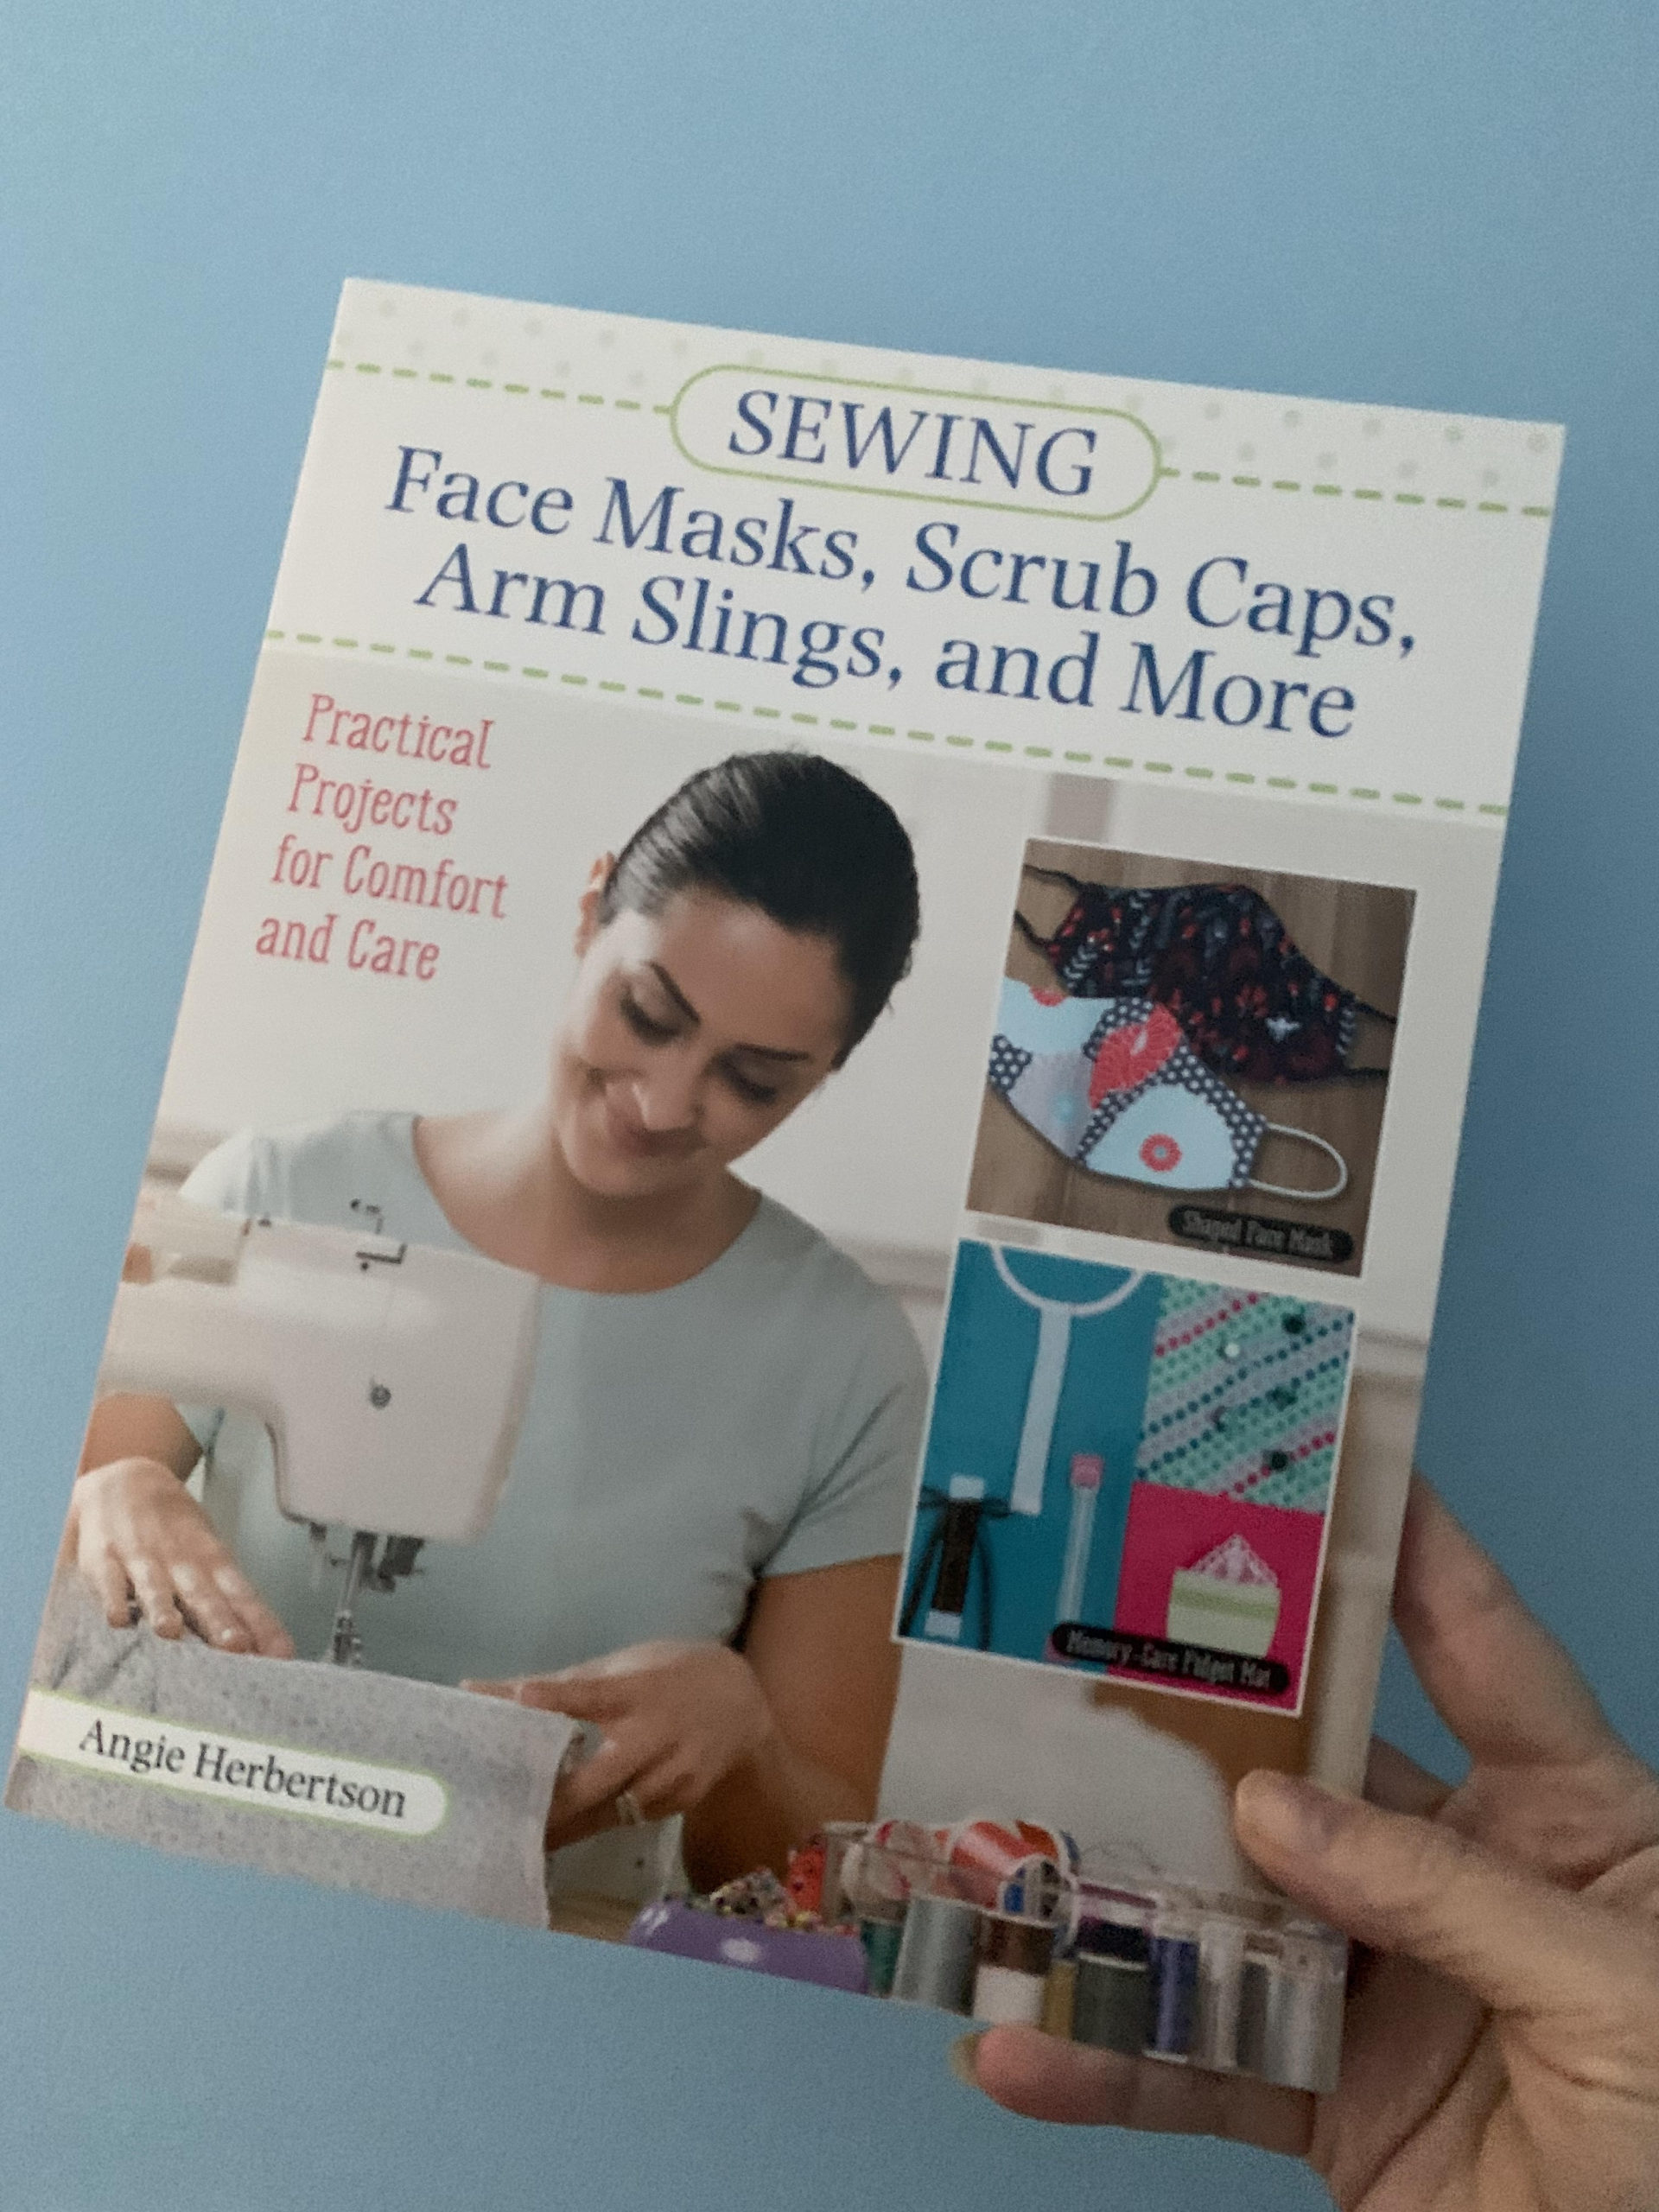 Book Review - Sewing Face Masks, Scrub Caps, Arm Slings, and More